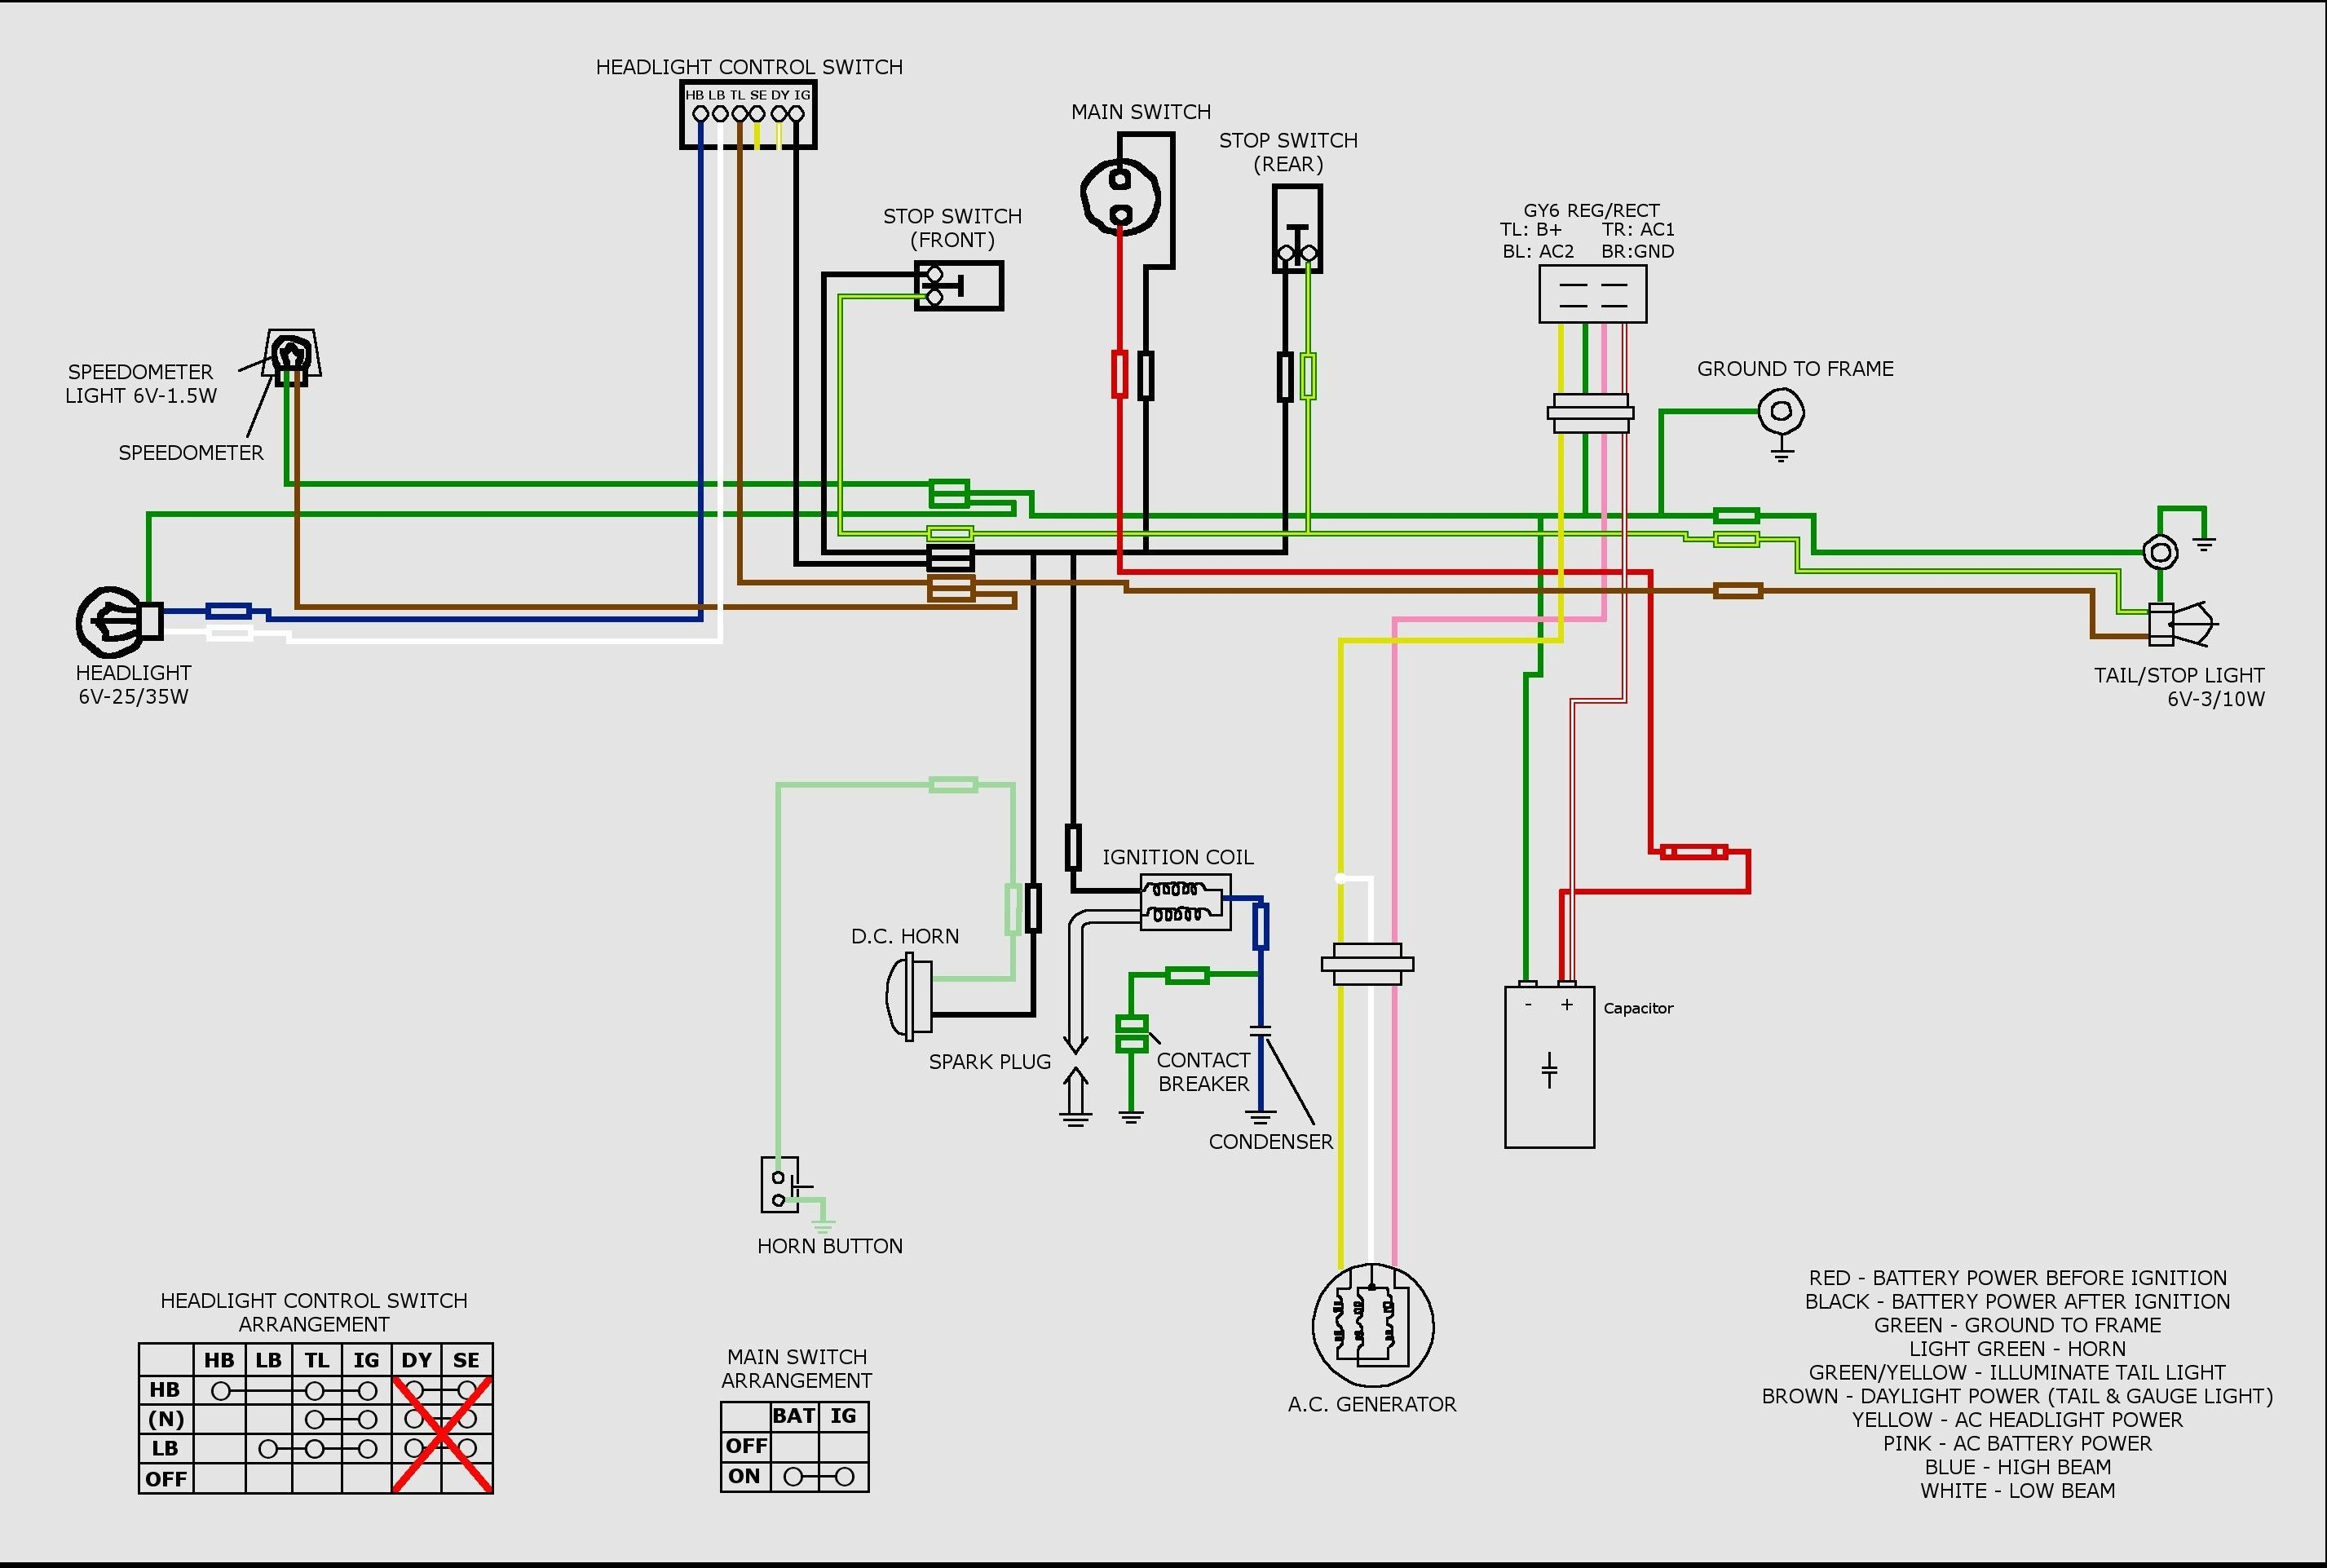 Chinese 110 Bike with Starter Wiring Diagram Gy6 Wiring Diagram Awesome 150cc Gy6 Wiring Diagram within Of Chinese 110 Bike with Starter Wiring Diagram